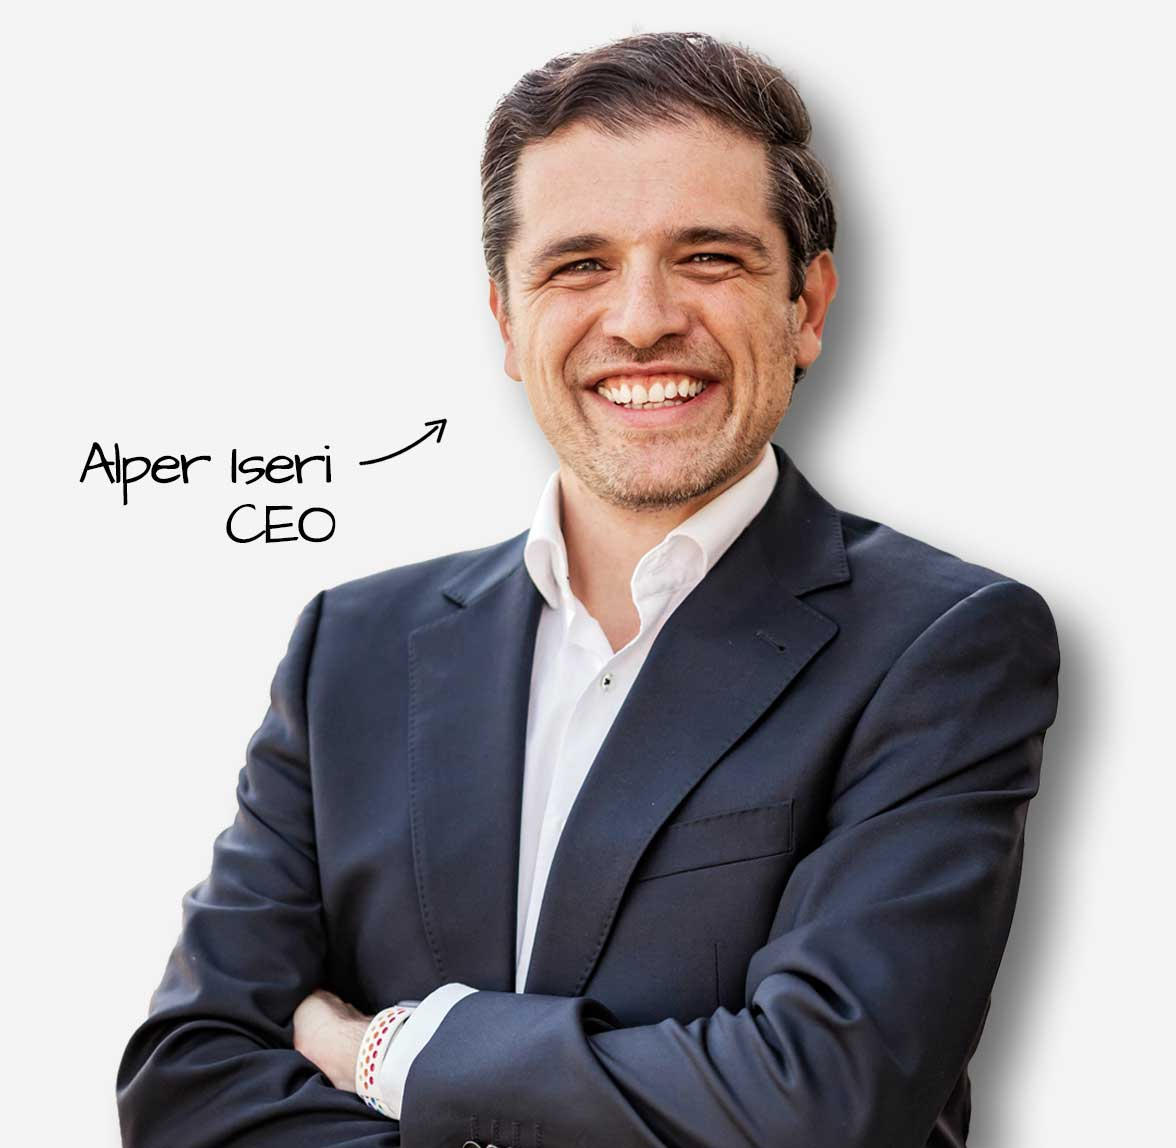 Alper Iseri - AI Digital Consulting